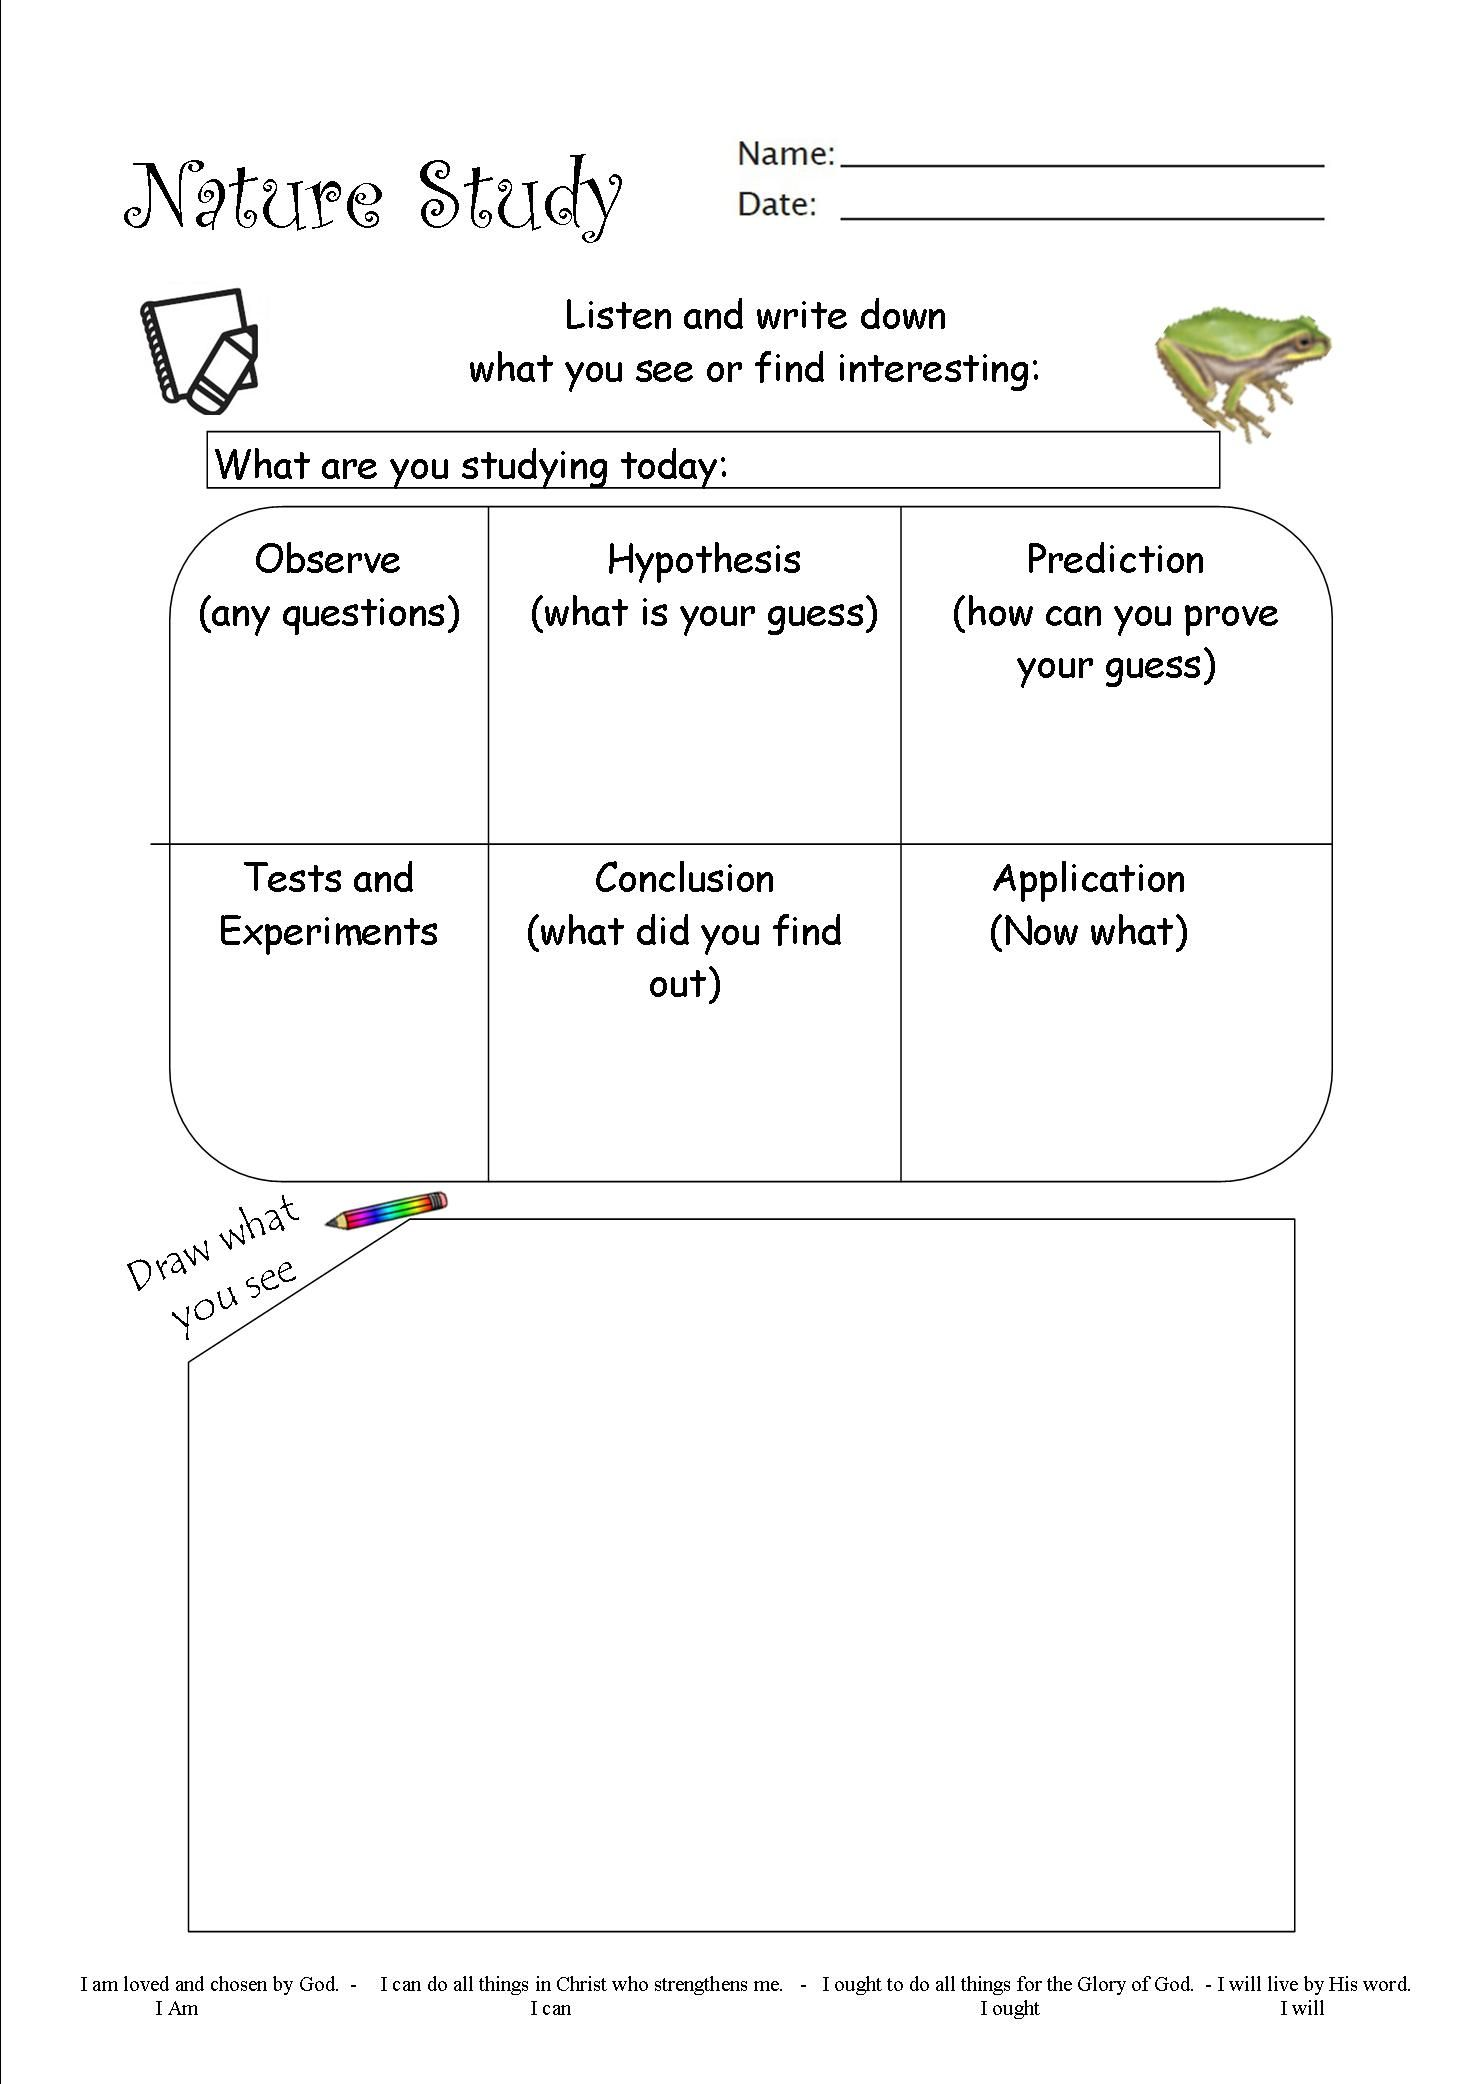 I Made This Nature Study Worksheet And Added In The